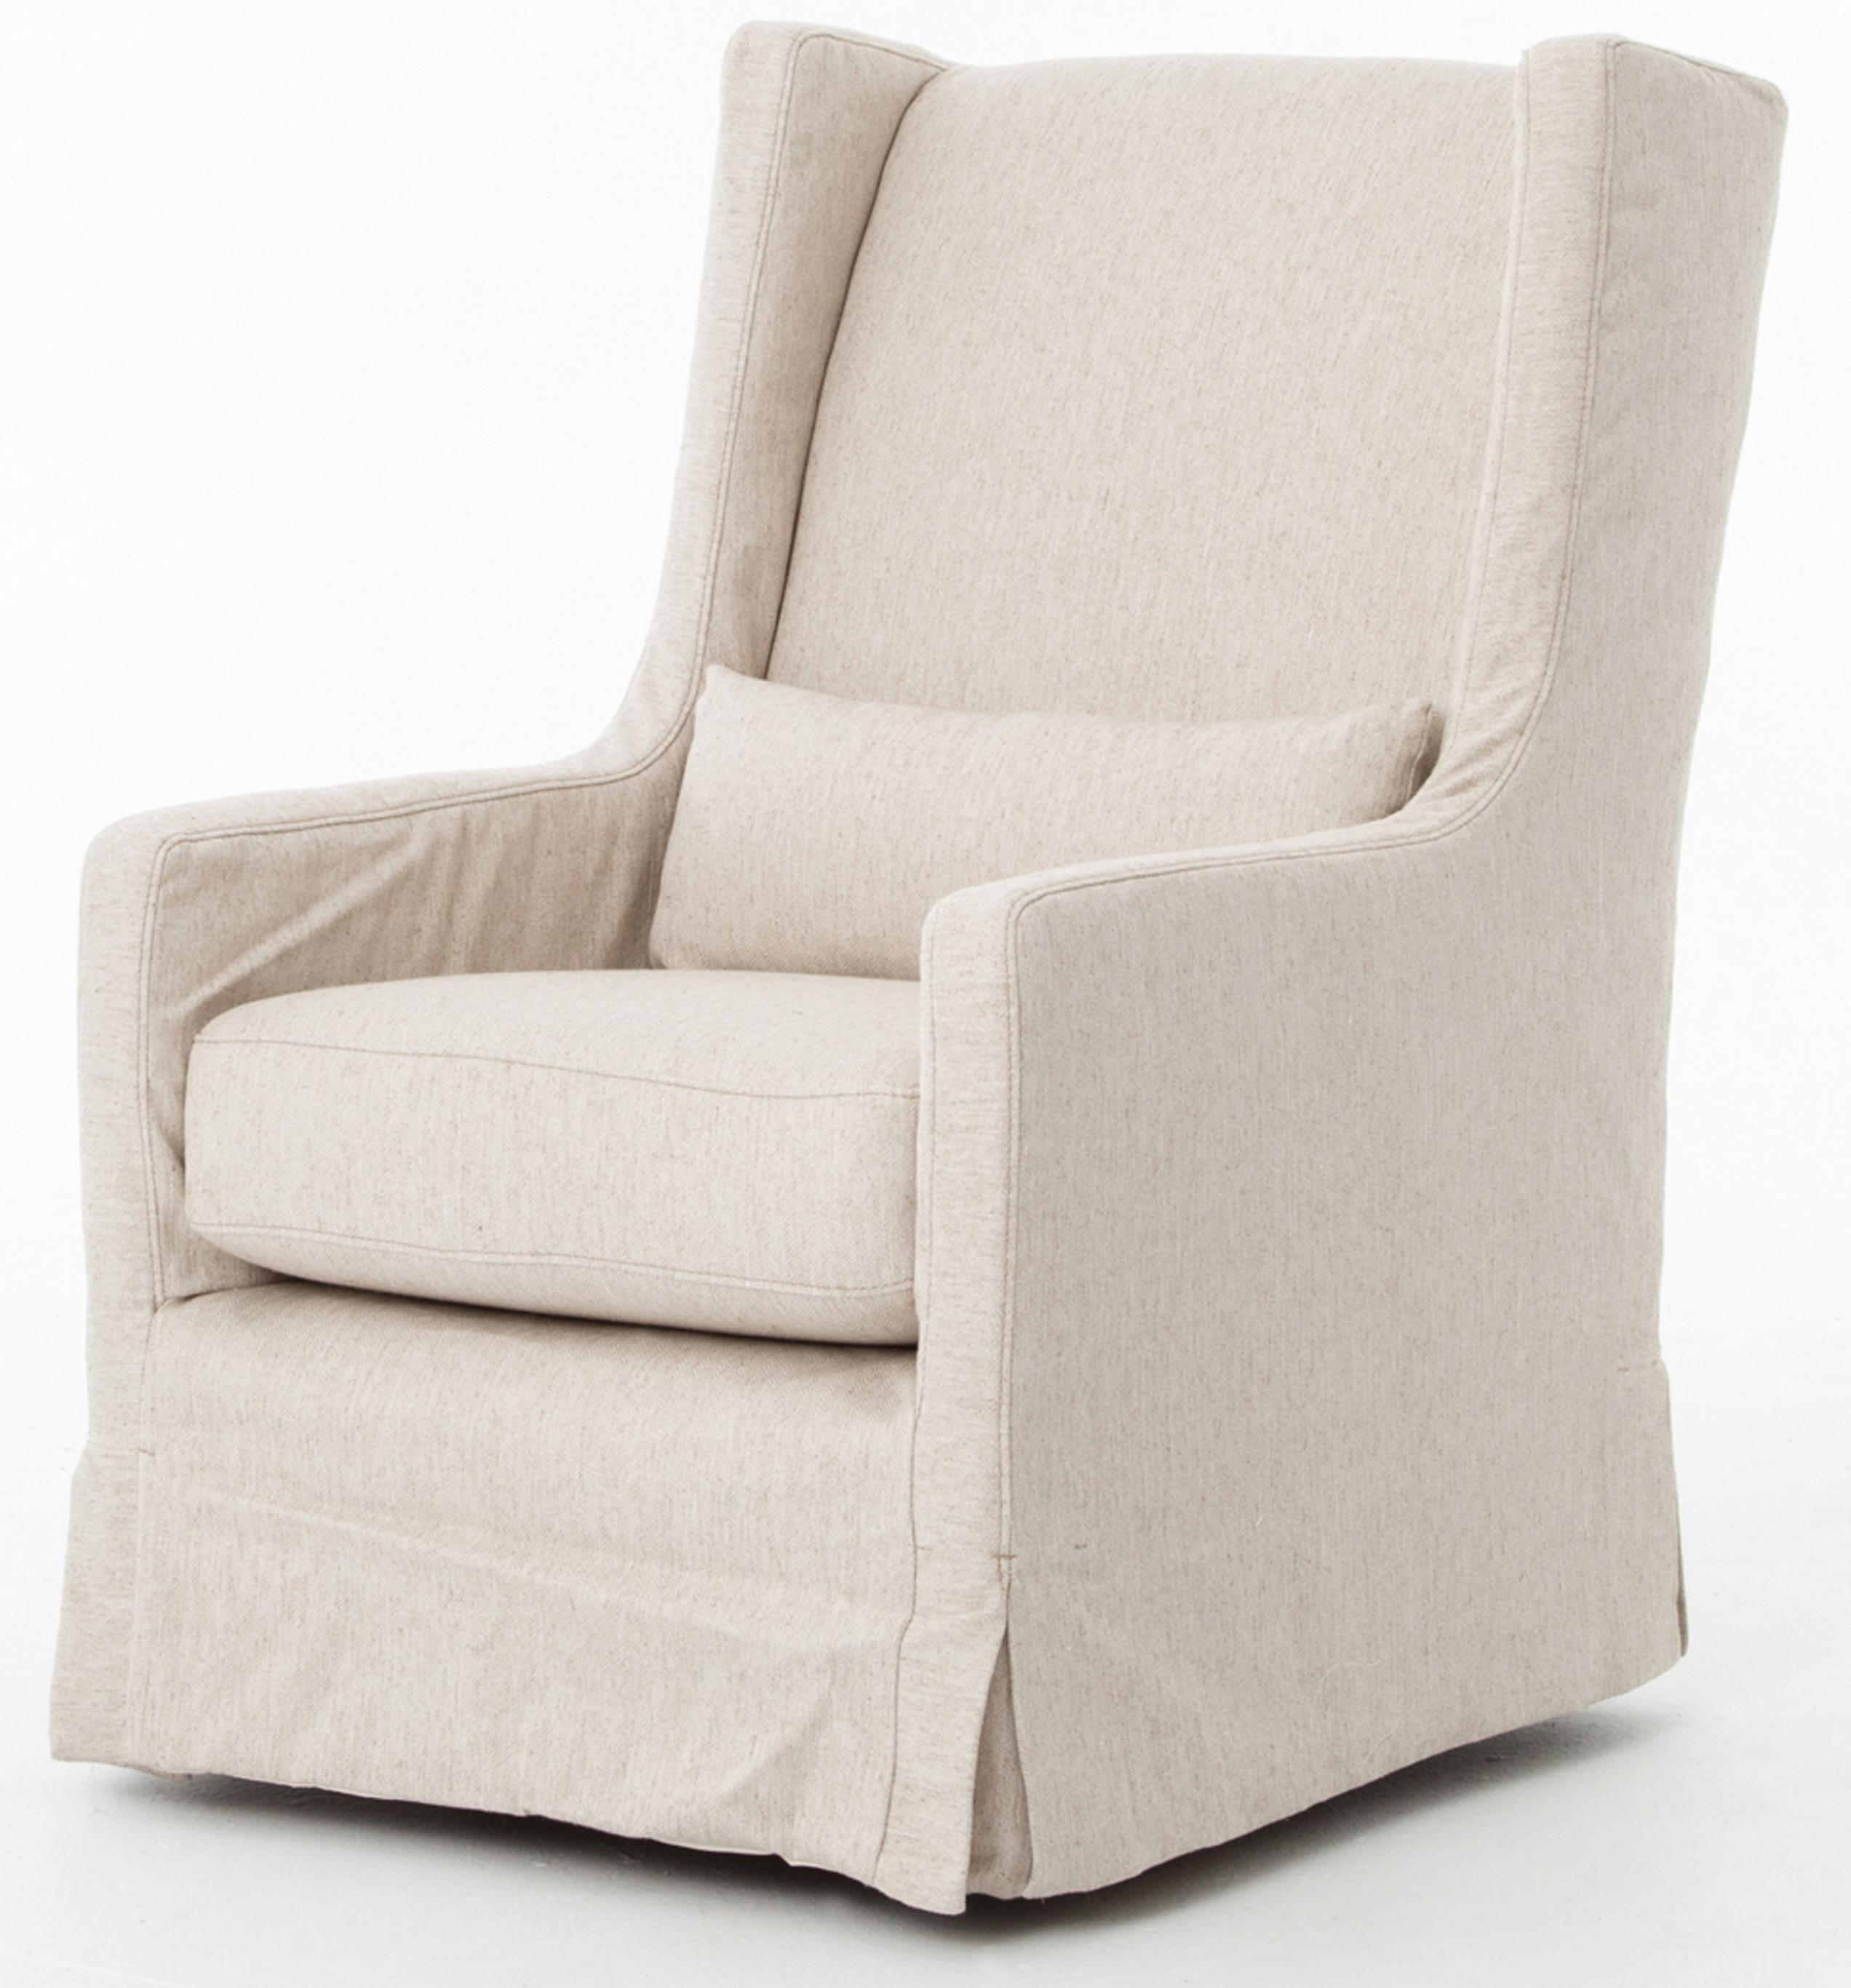 Charmant Swivel Wing Chair